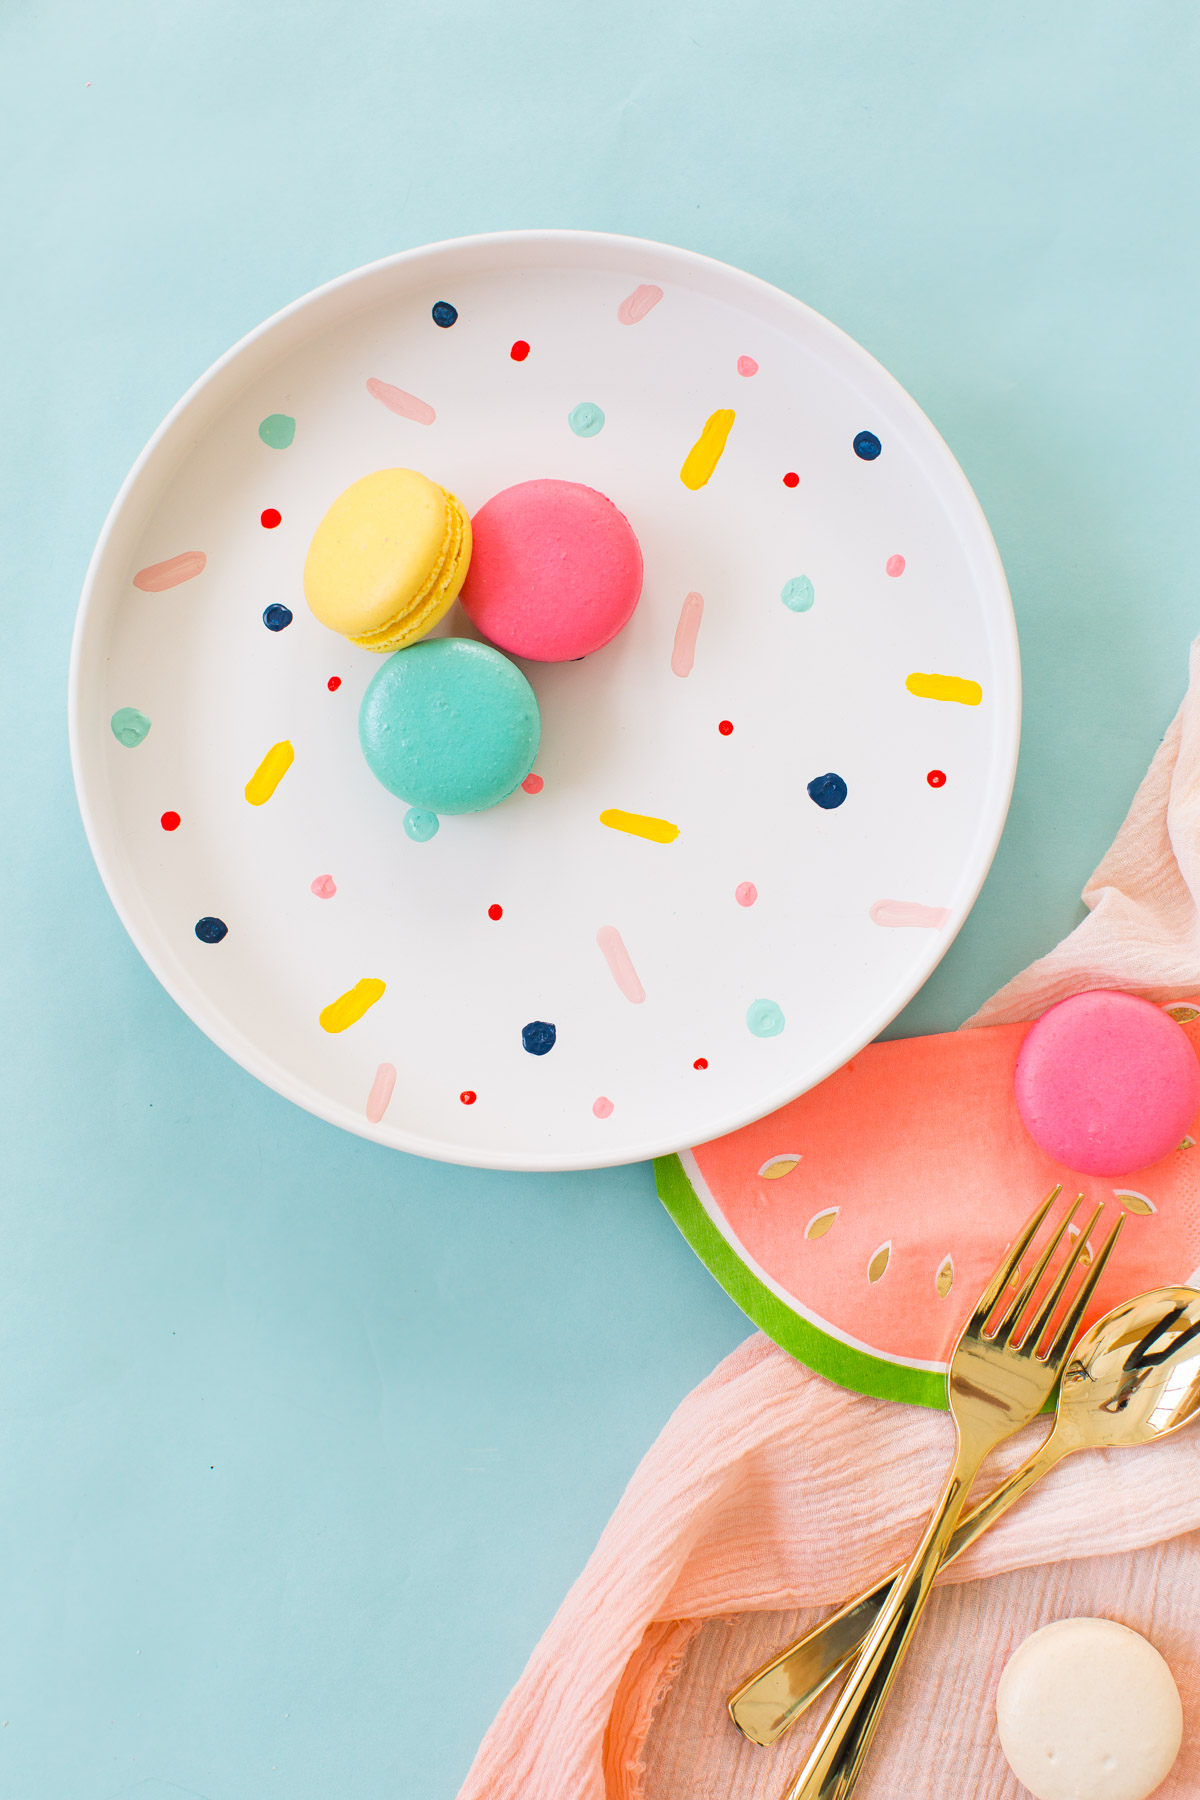 DIY confetti patterned placemats